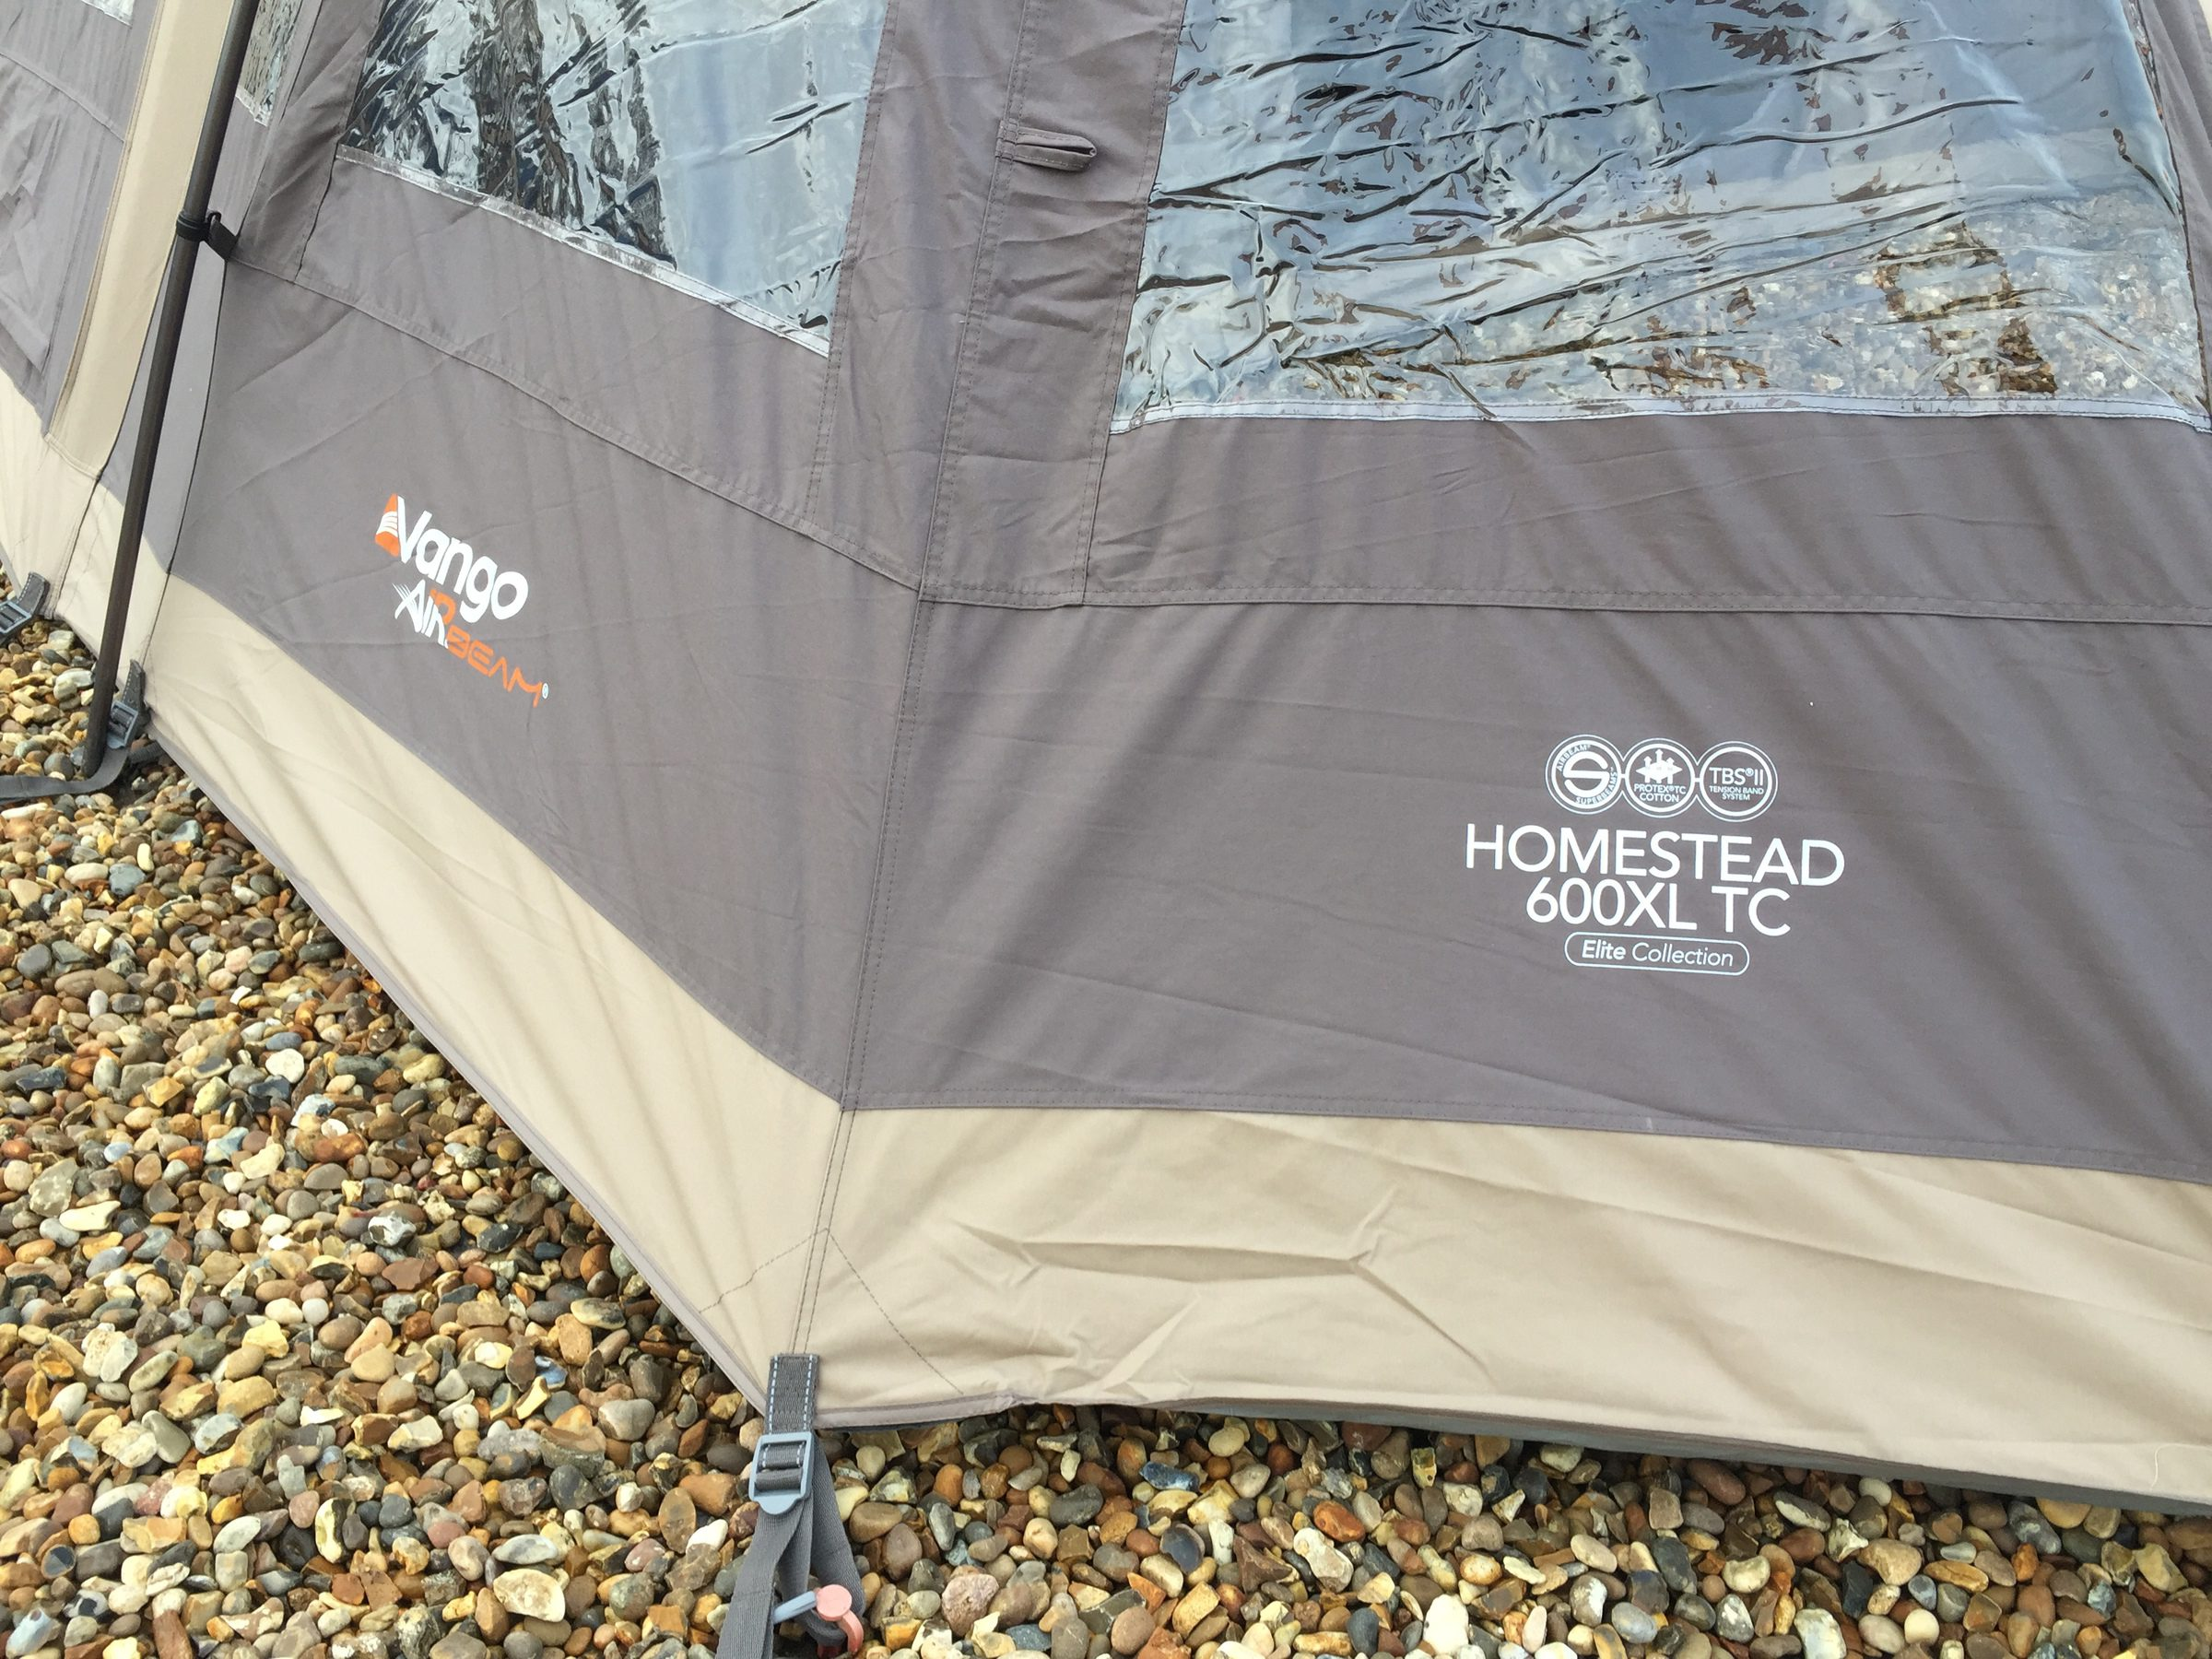 Vango Homestead Tc 600Xl 2